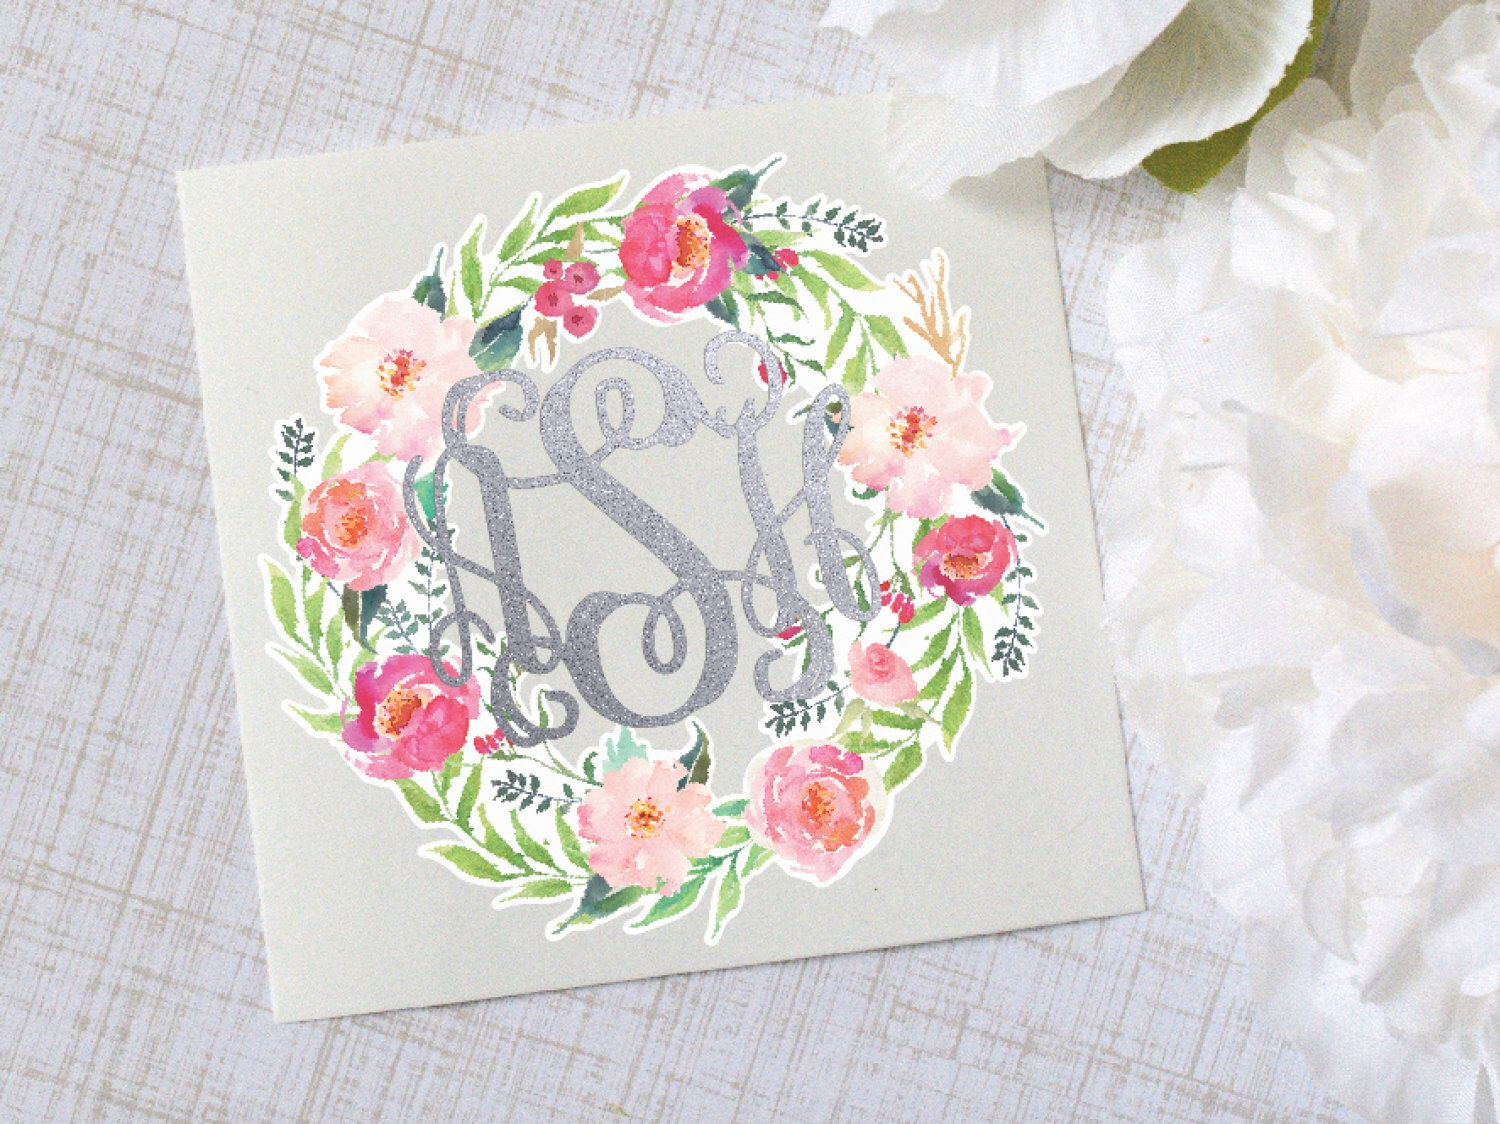 Flower Wreath Monogram Vinyl Decal Flower Decal Watercolor